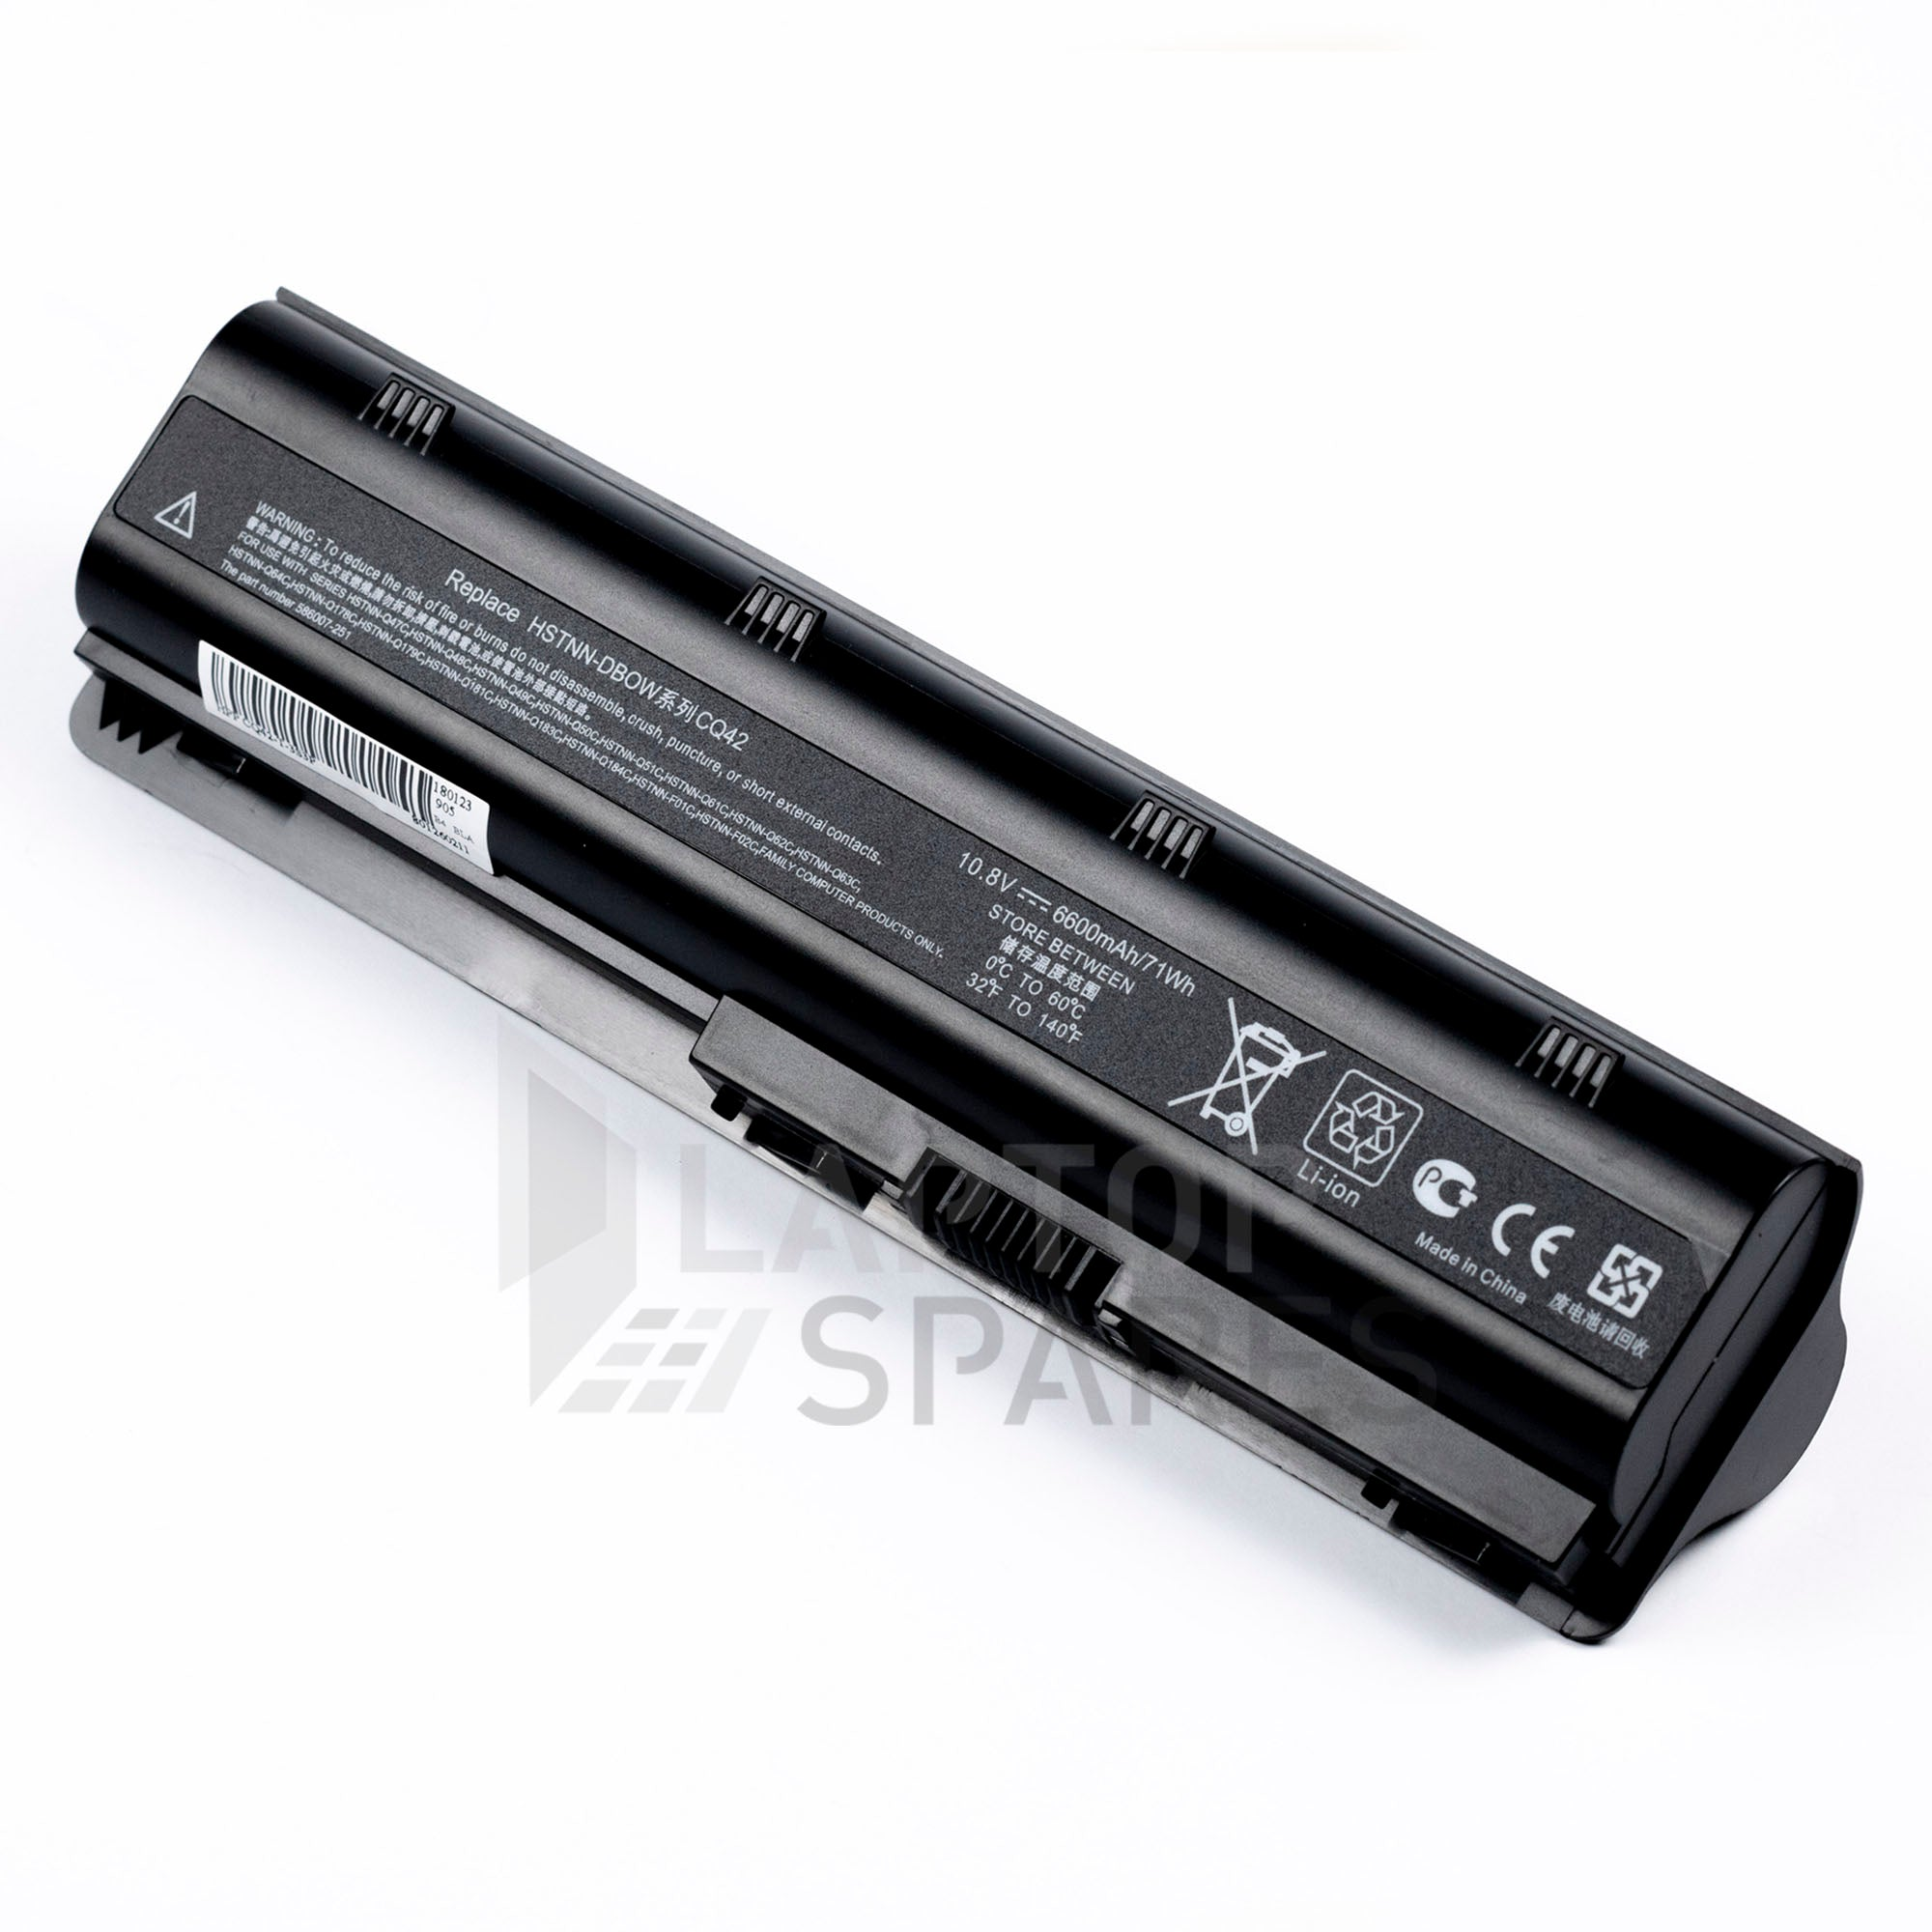 HP Compaq CQ42 6600mAh 9 Cell Battery